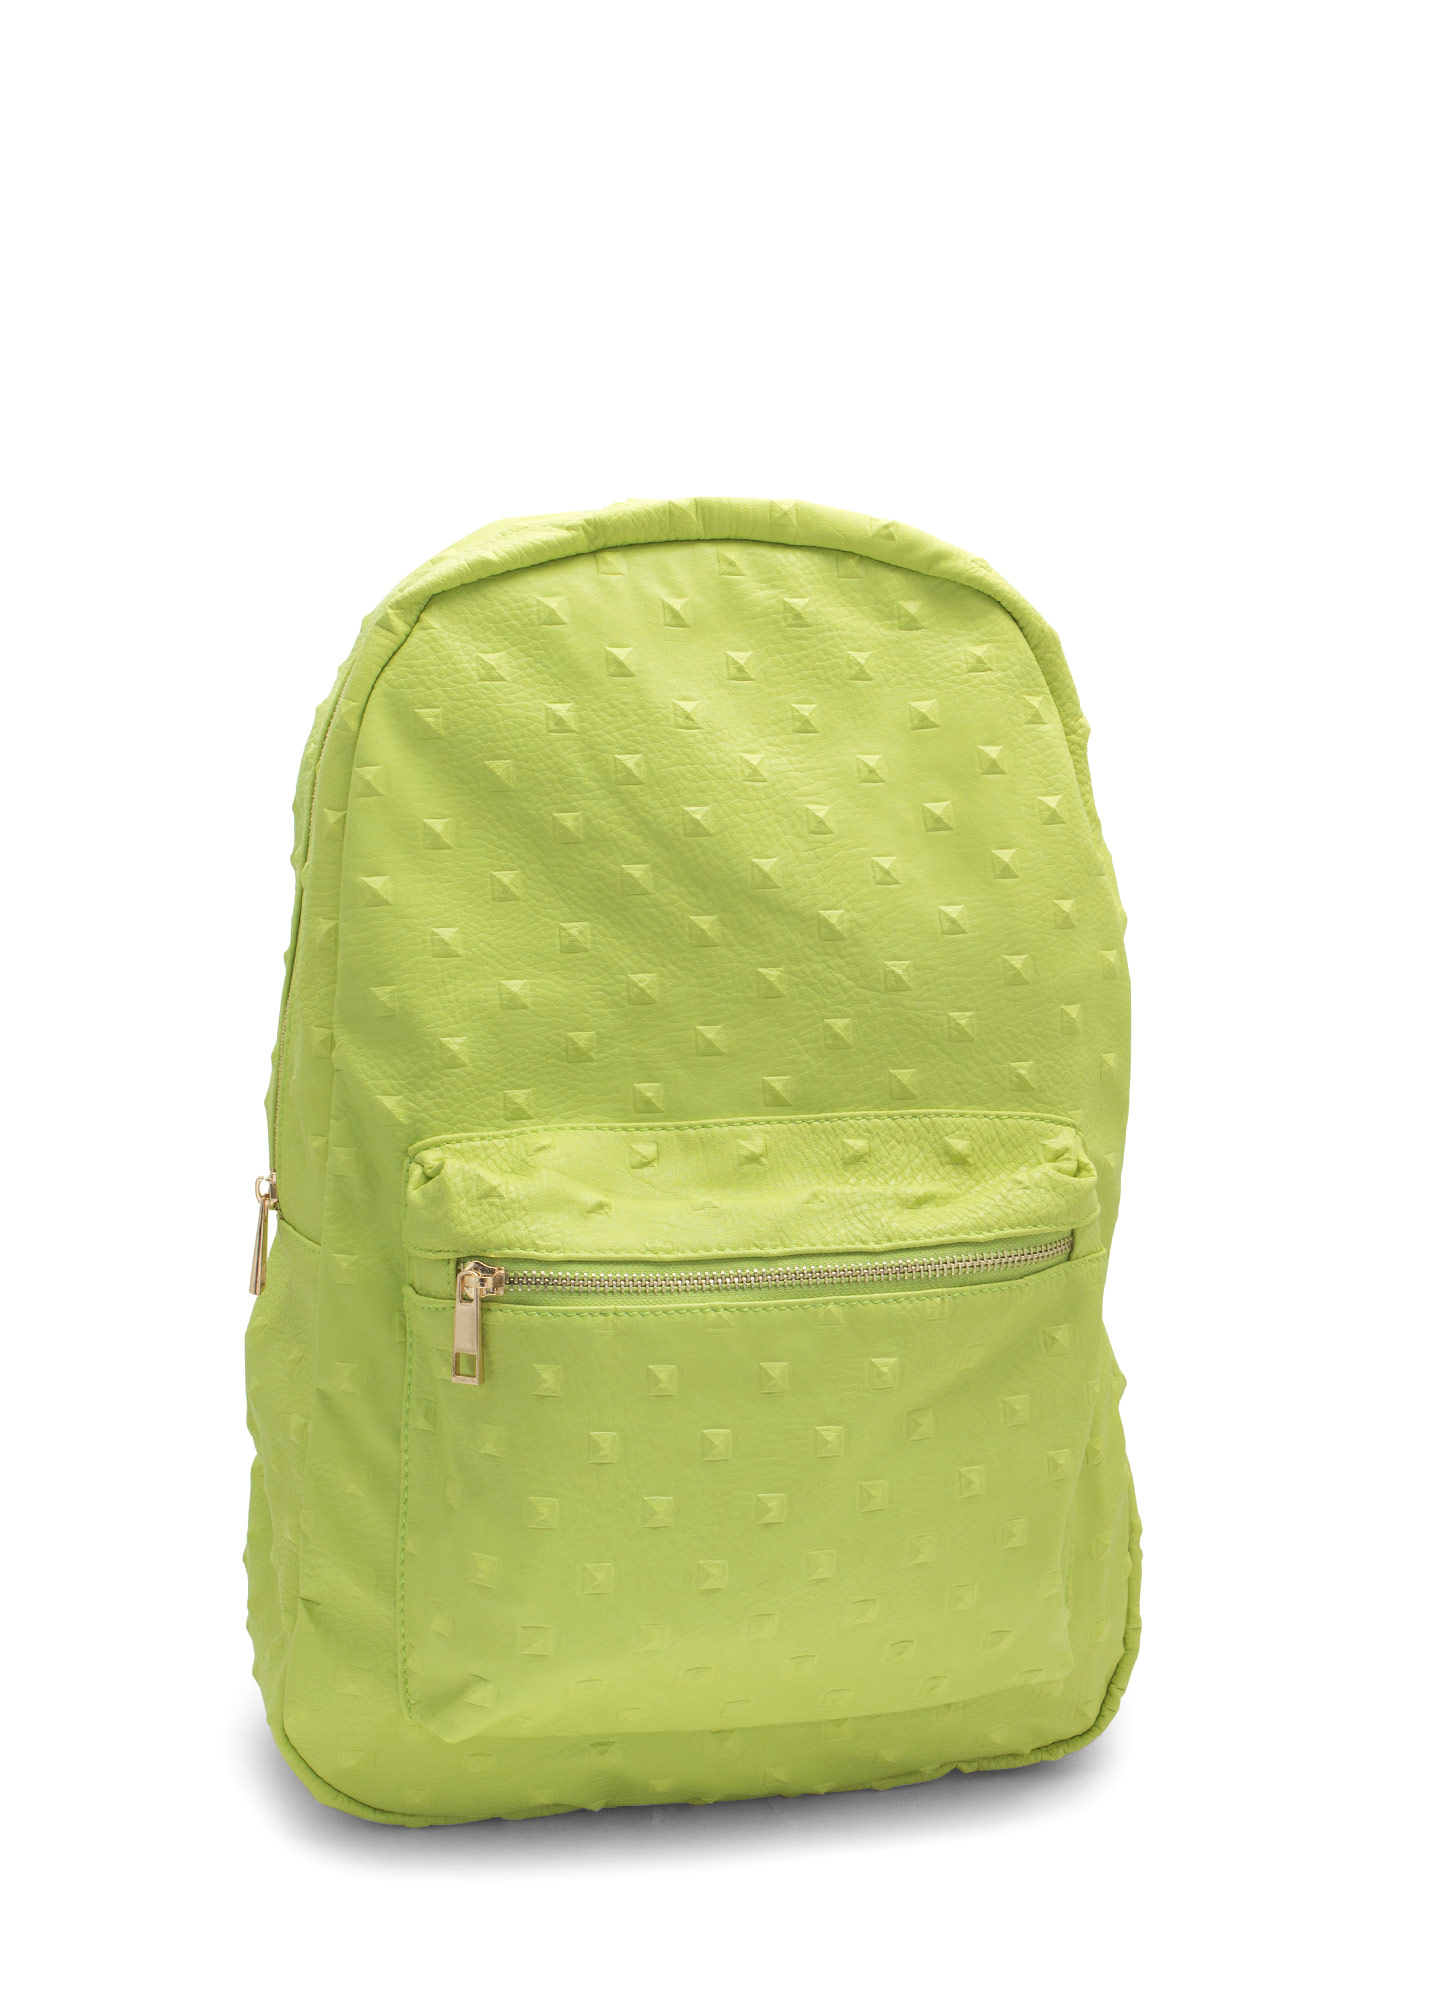 Imprint Studded Faux Leather Backpack YELLOW